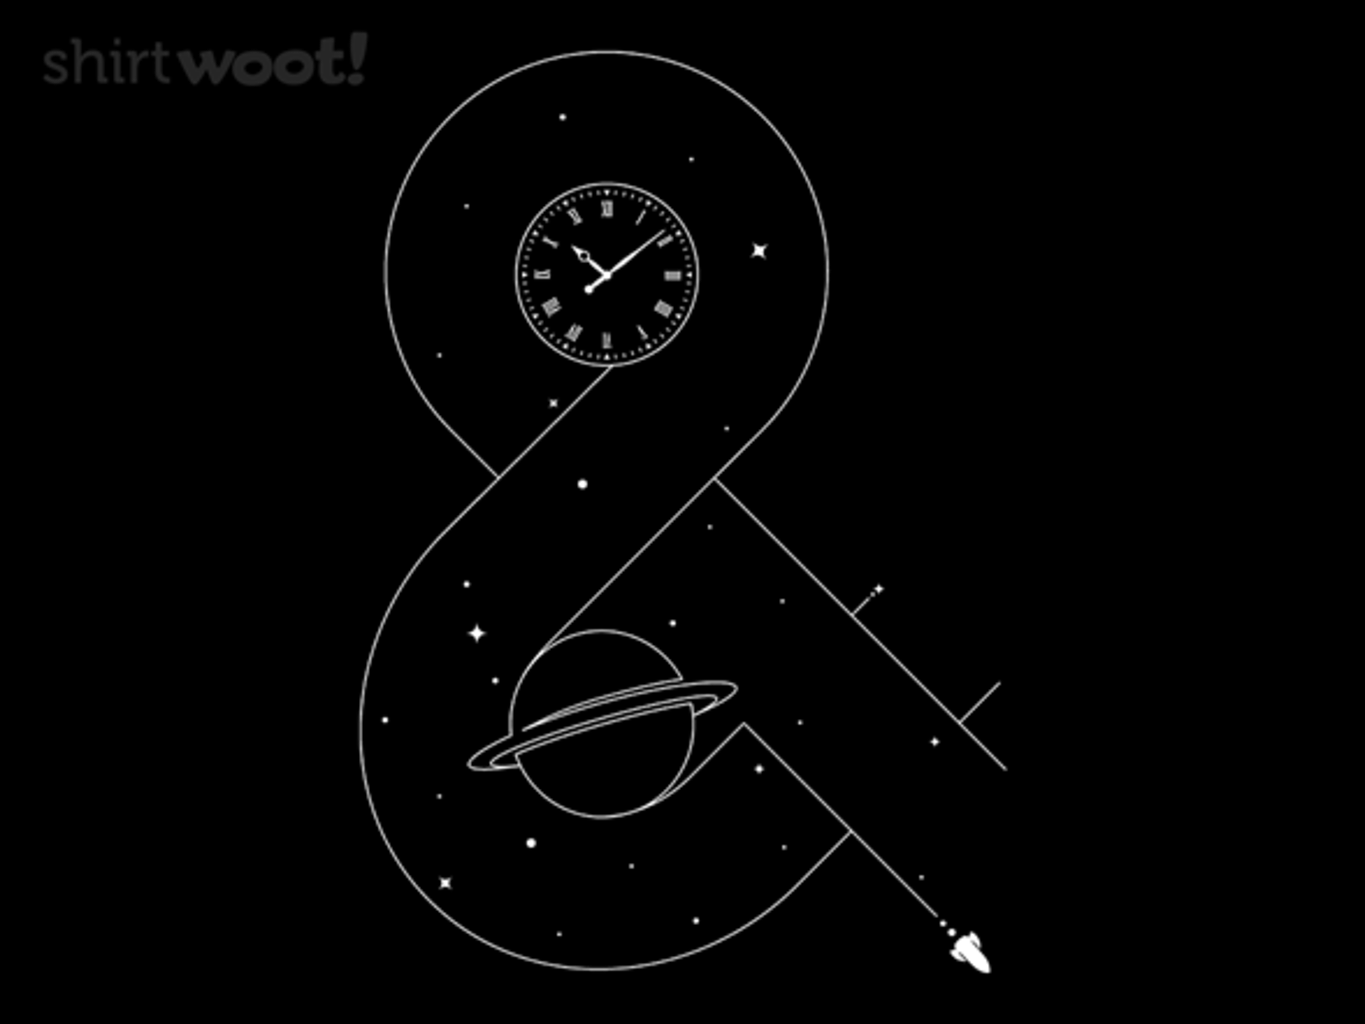 Woot!: Time & Space